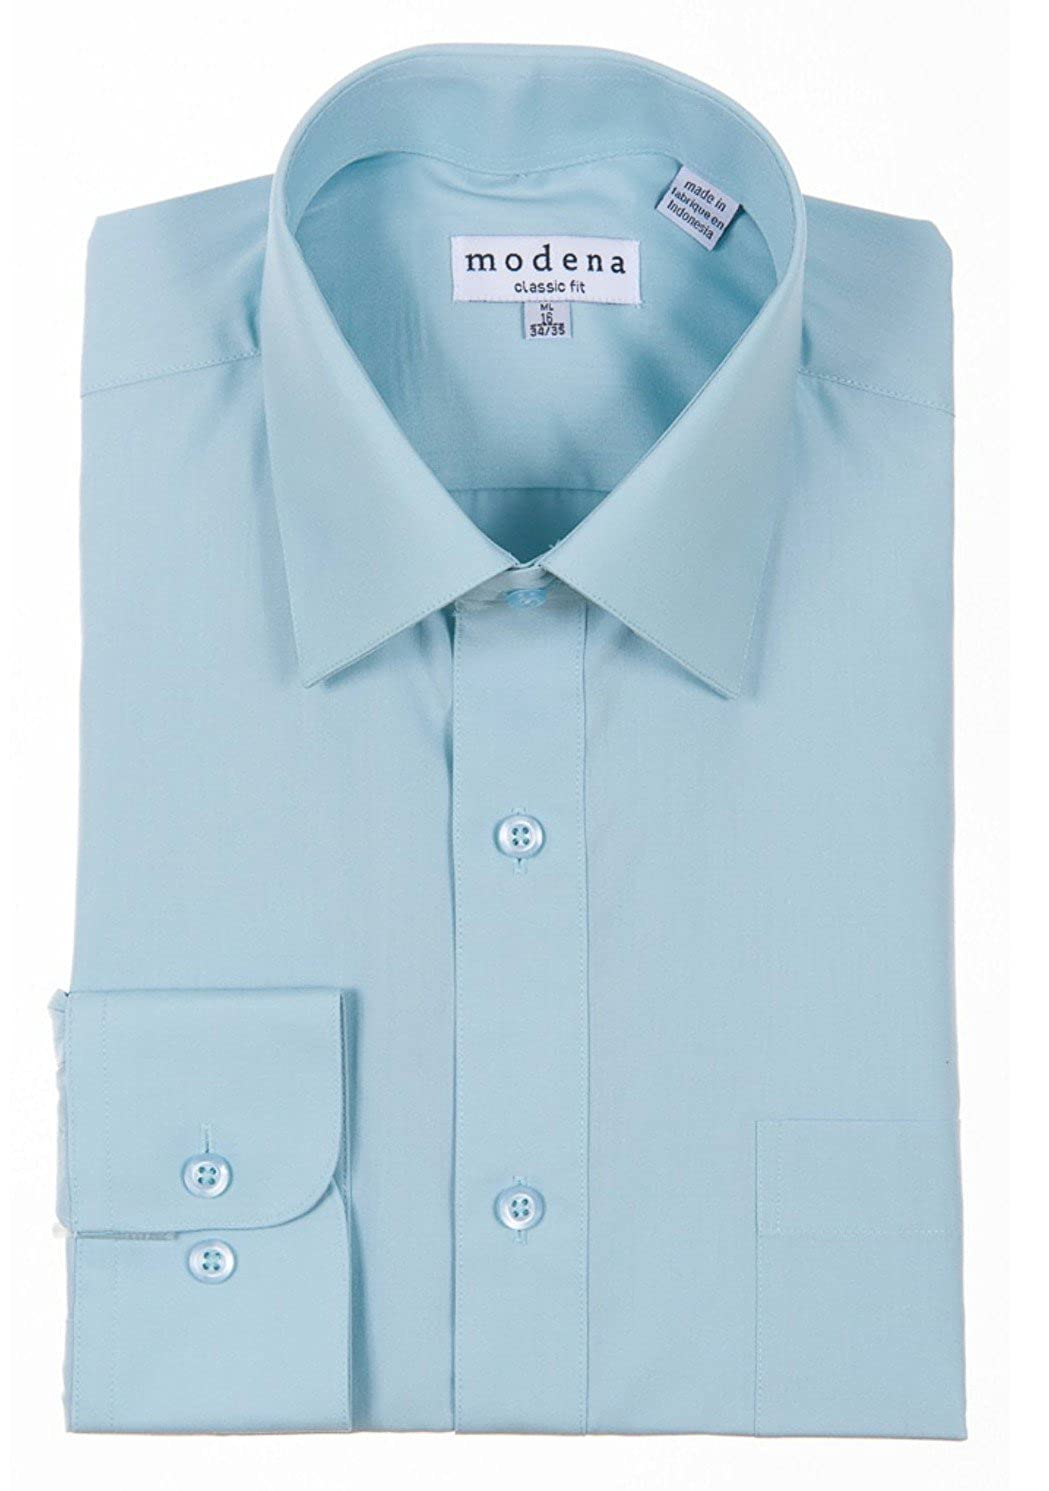 387e8620b1615 Modena Men's Regular & Contemporary (Slim) Fit Long Sleeve Solid Dress  Shirt – Colors (All Sizes)